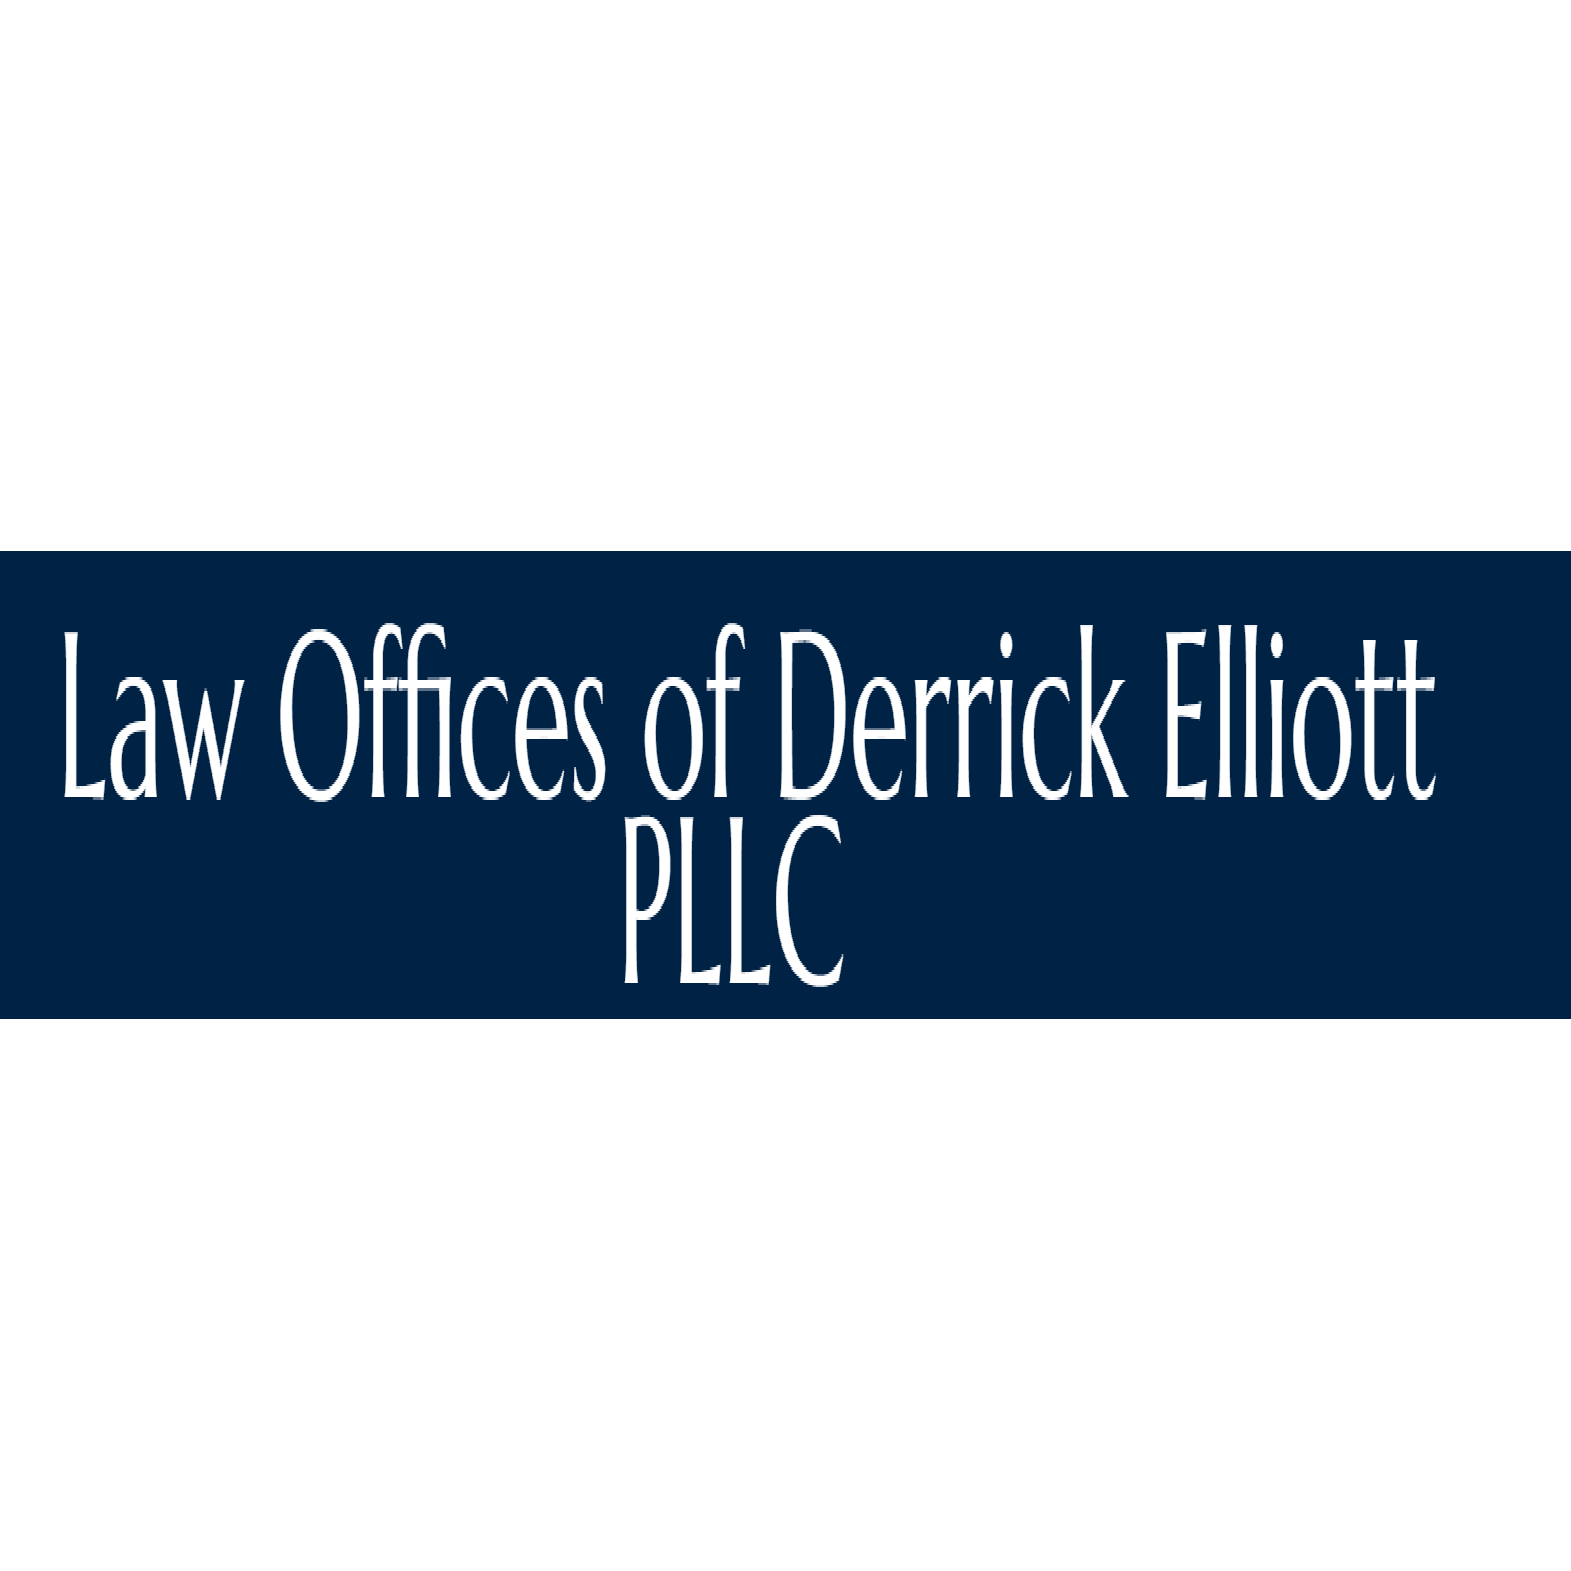 Law Offices of Derrick Elliott, PLLC- - Eastland, TX 76448 - (254)433-2930 | ShowMeLocal.com